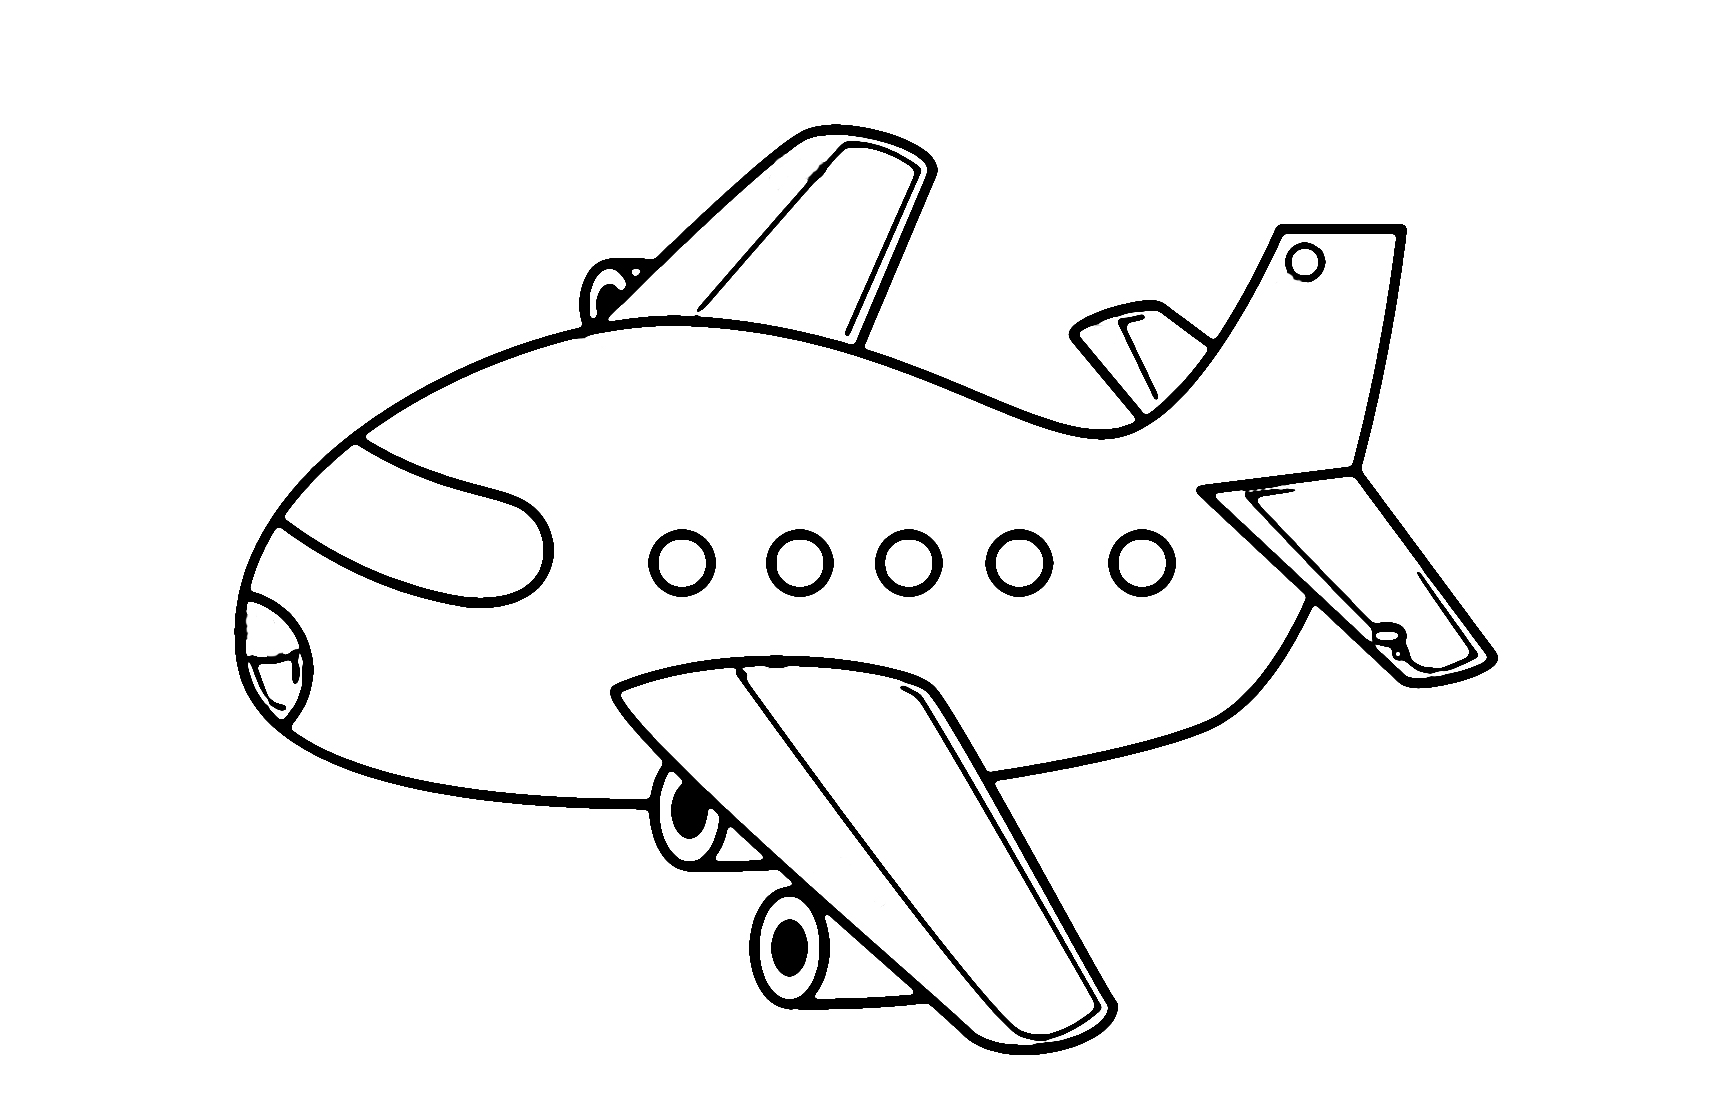 plane coloring sheets print download the sophisticated transportation of plane coloring sheets